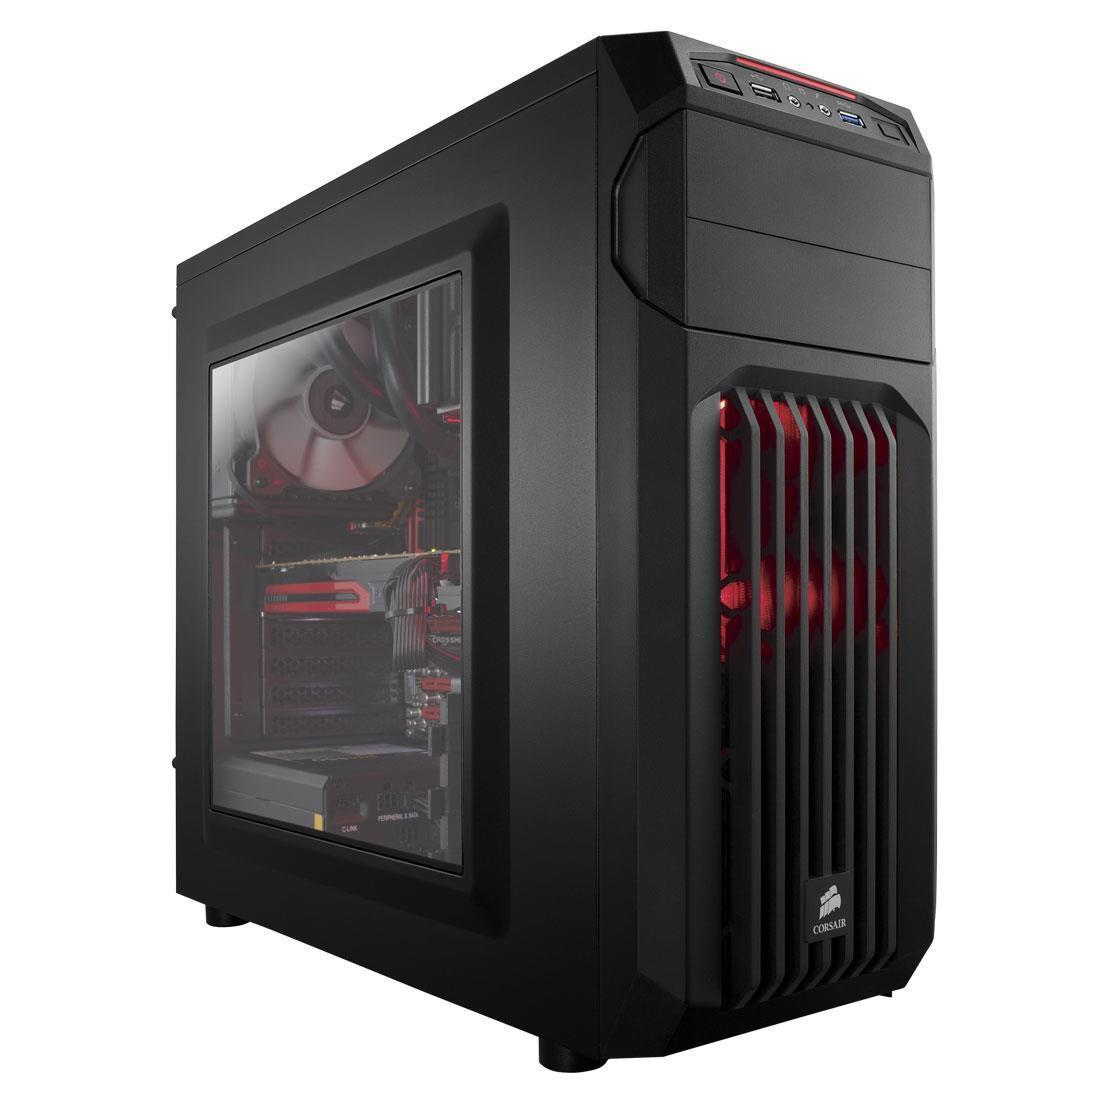 Cube Panther Gaming PC Core i5 with Geforce GTX 960 2Gb Graphics